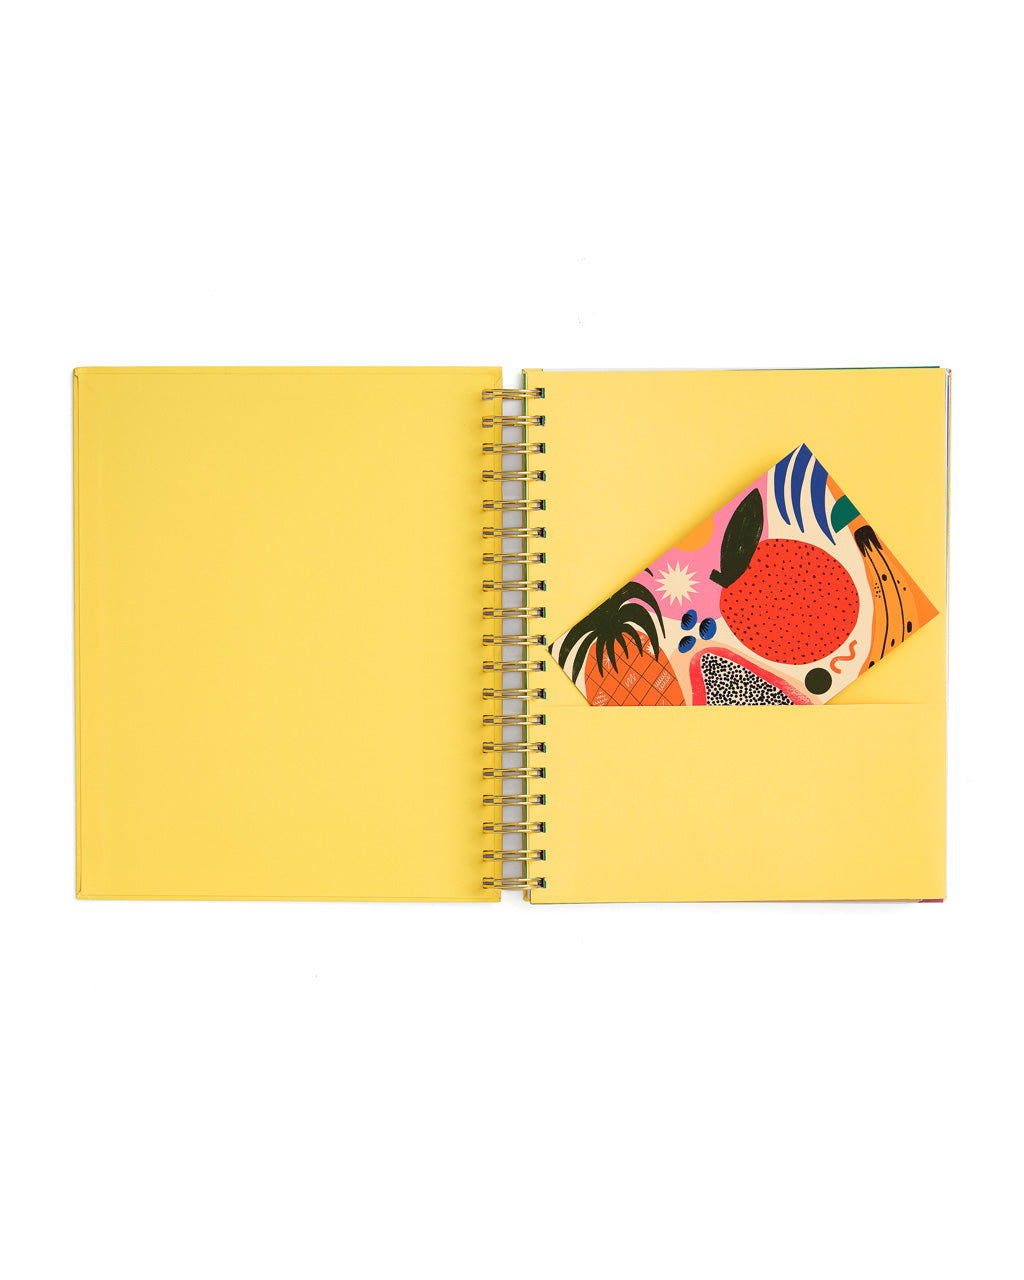 interior shot of yellow planner with yellow end sheets and pocket